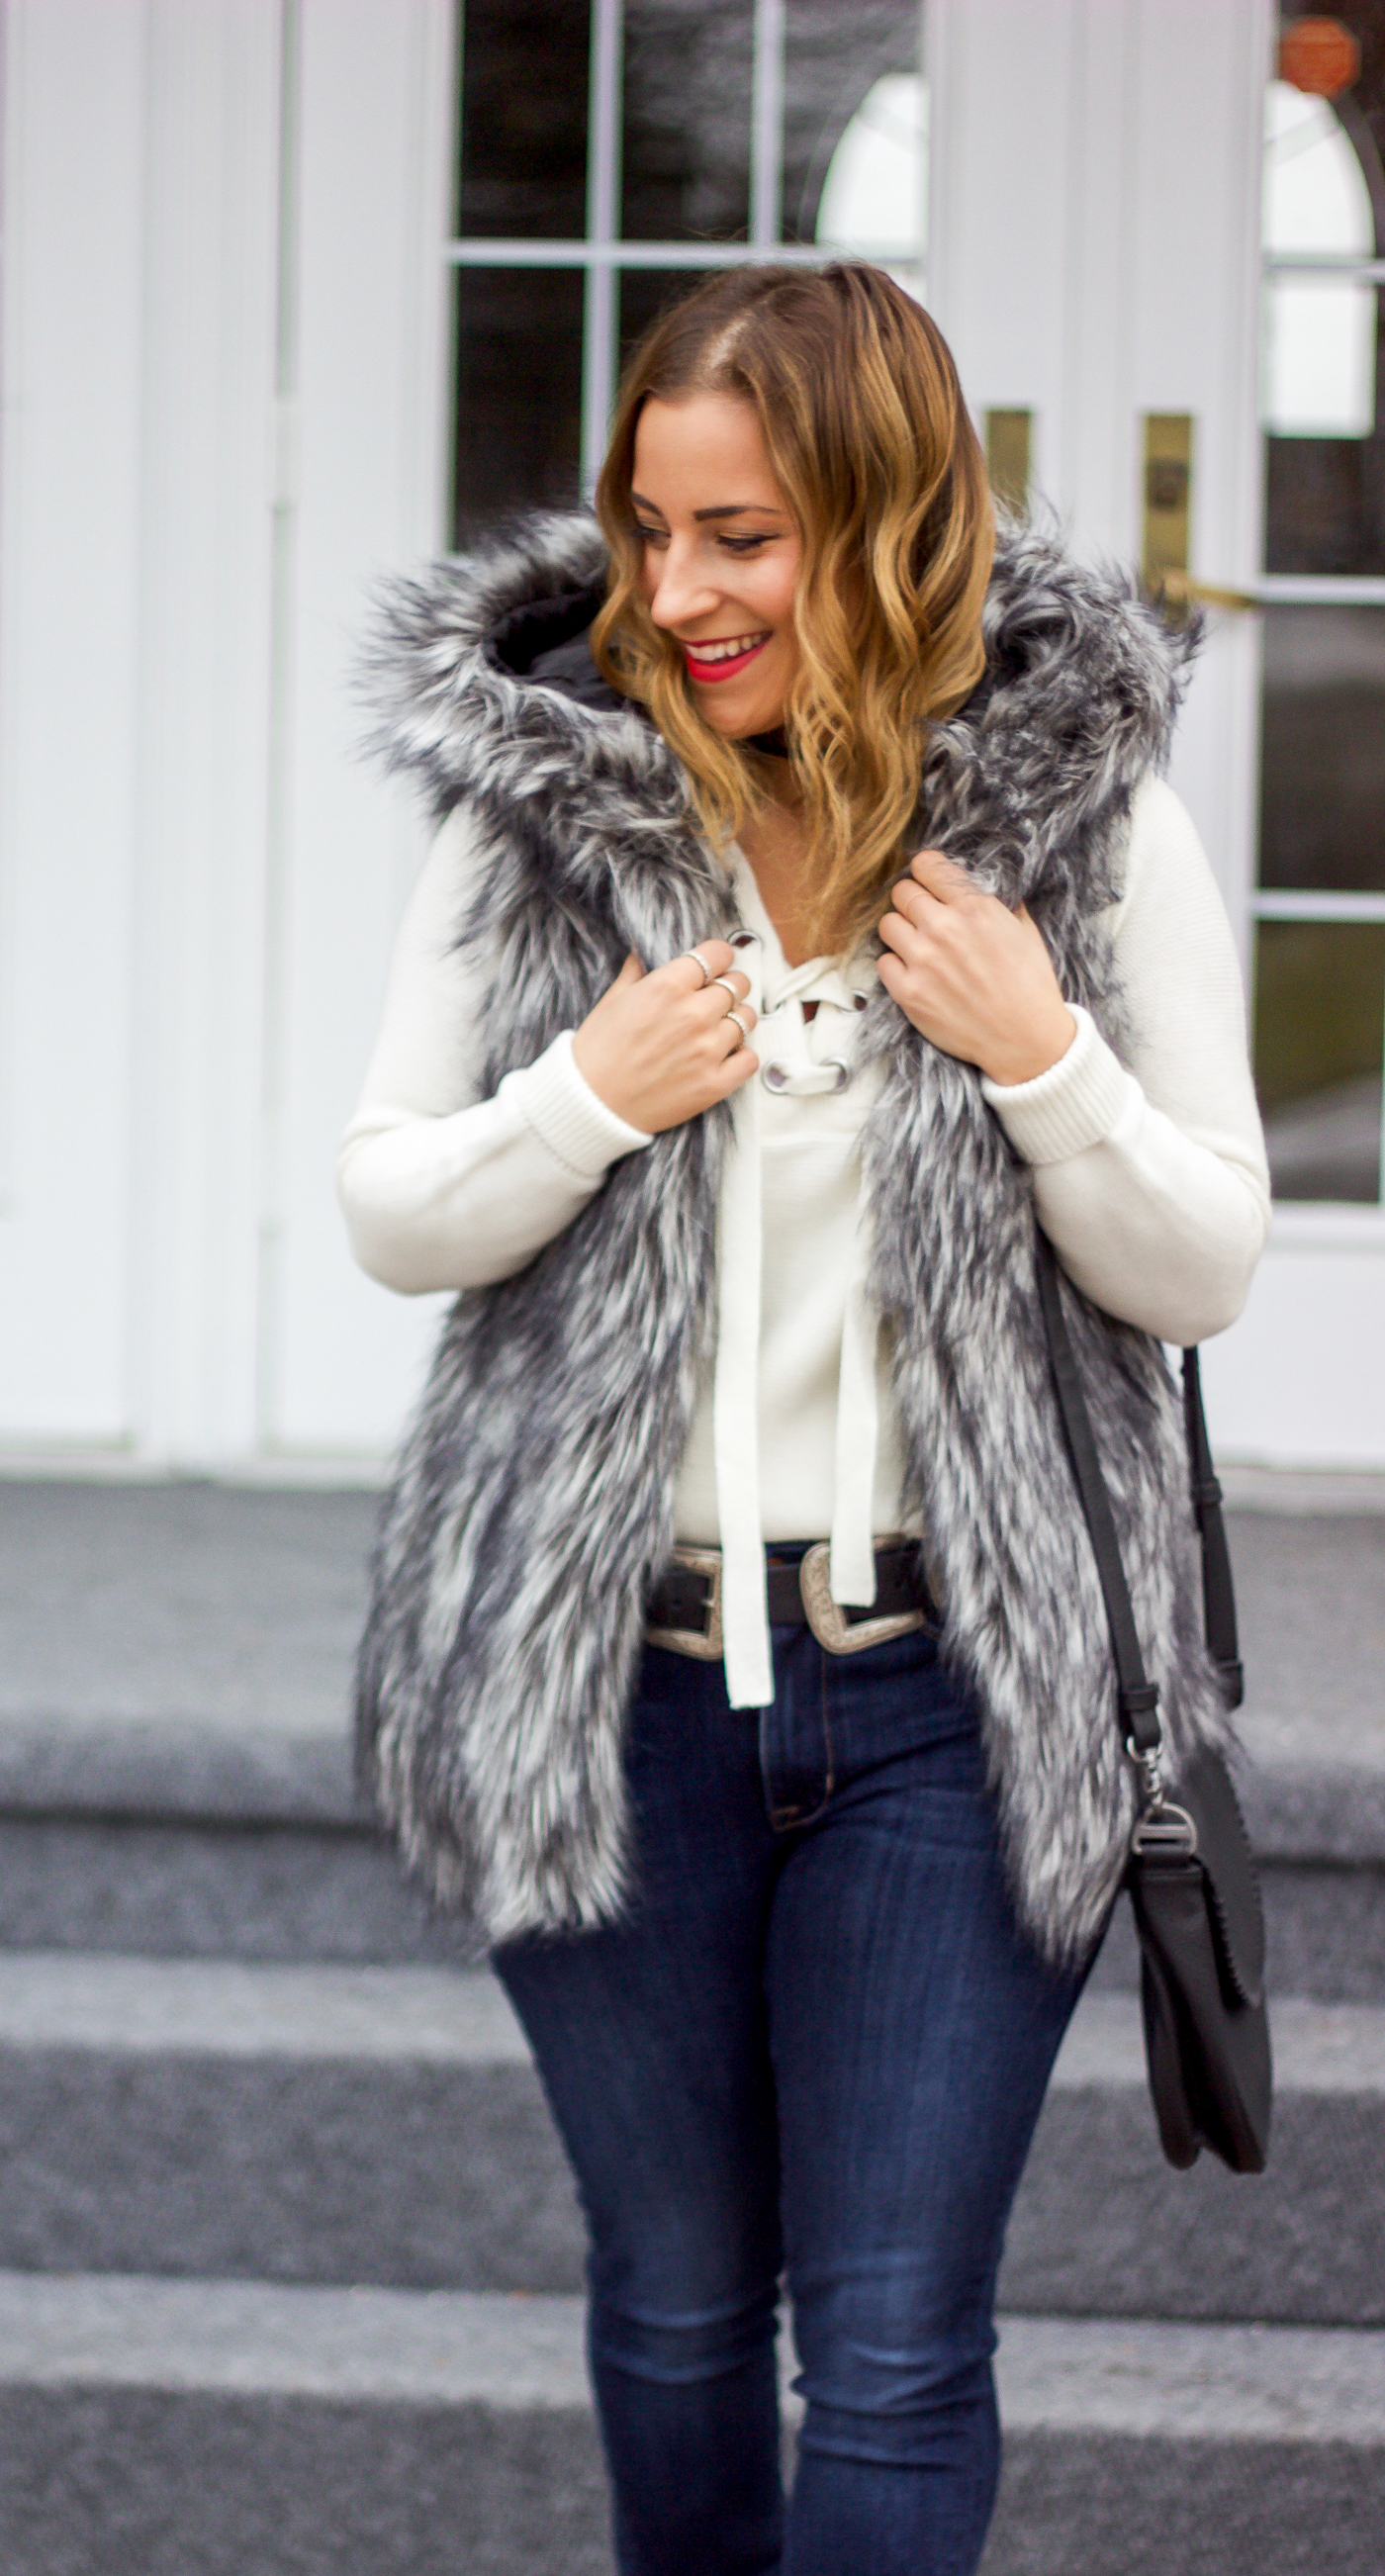 Toronto fashion and lifestyle blogger, Jackie of Something About That is wearing a faux fur vest with a hood from Aritzia and Fidelity jeans